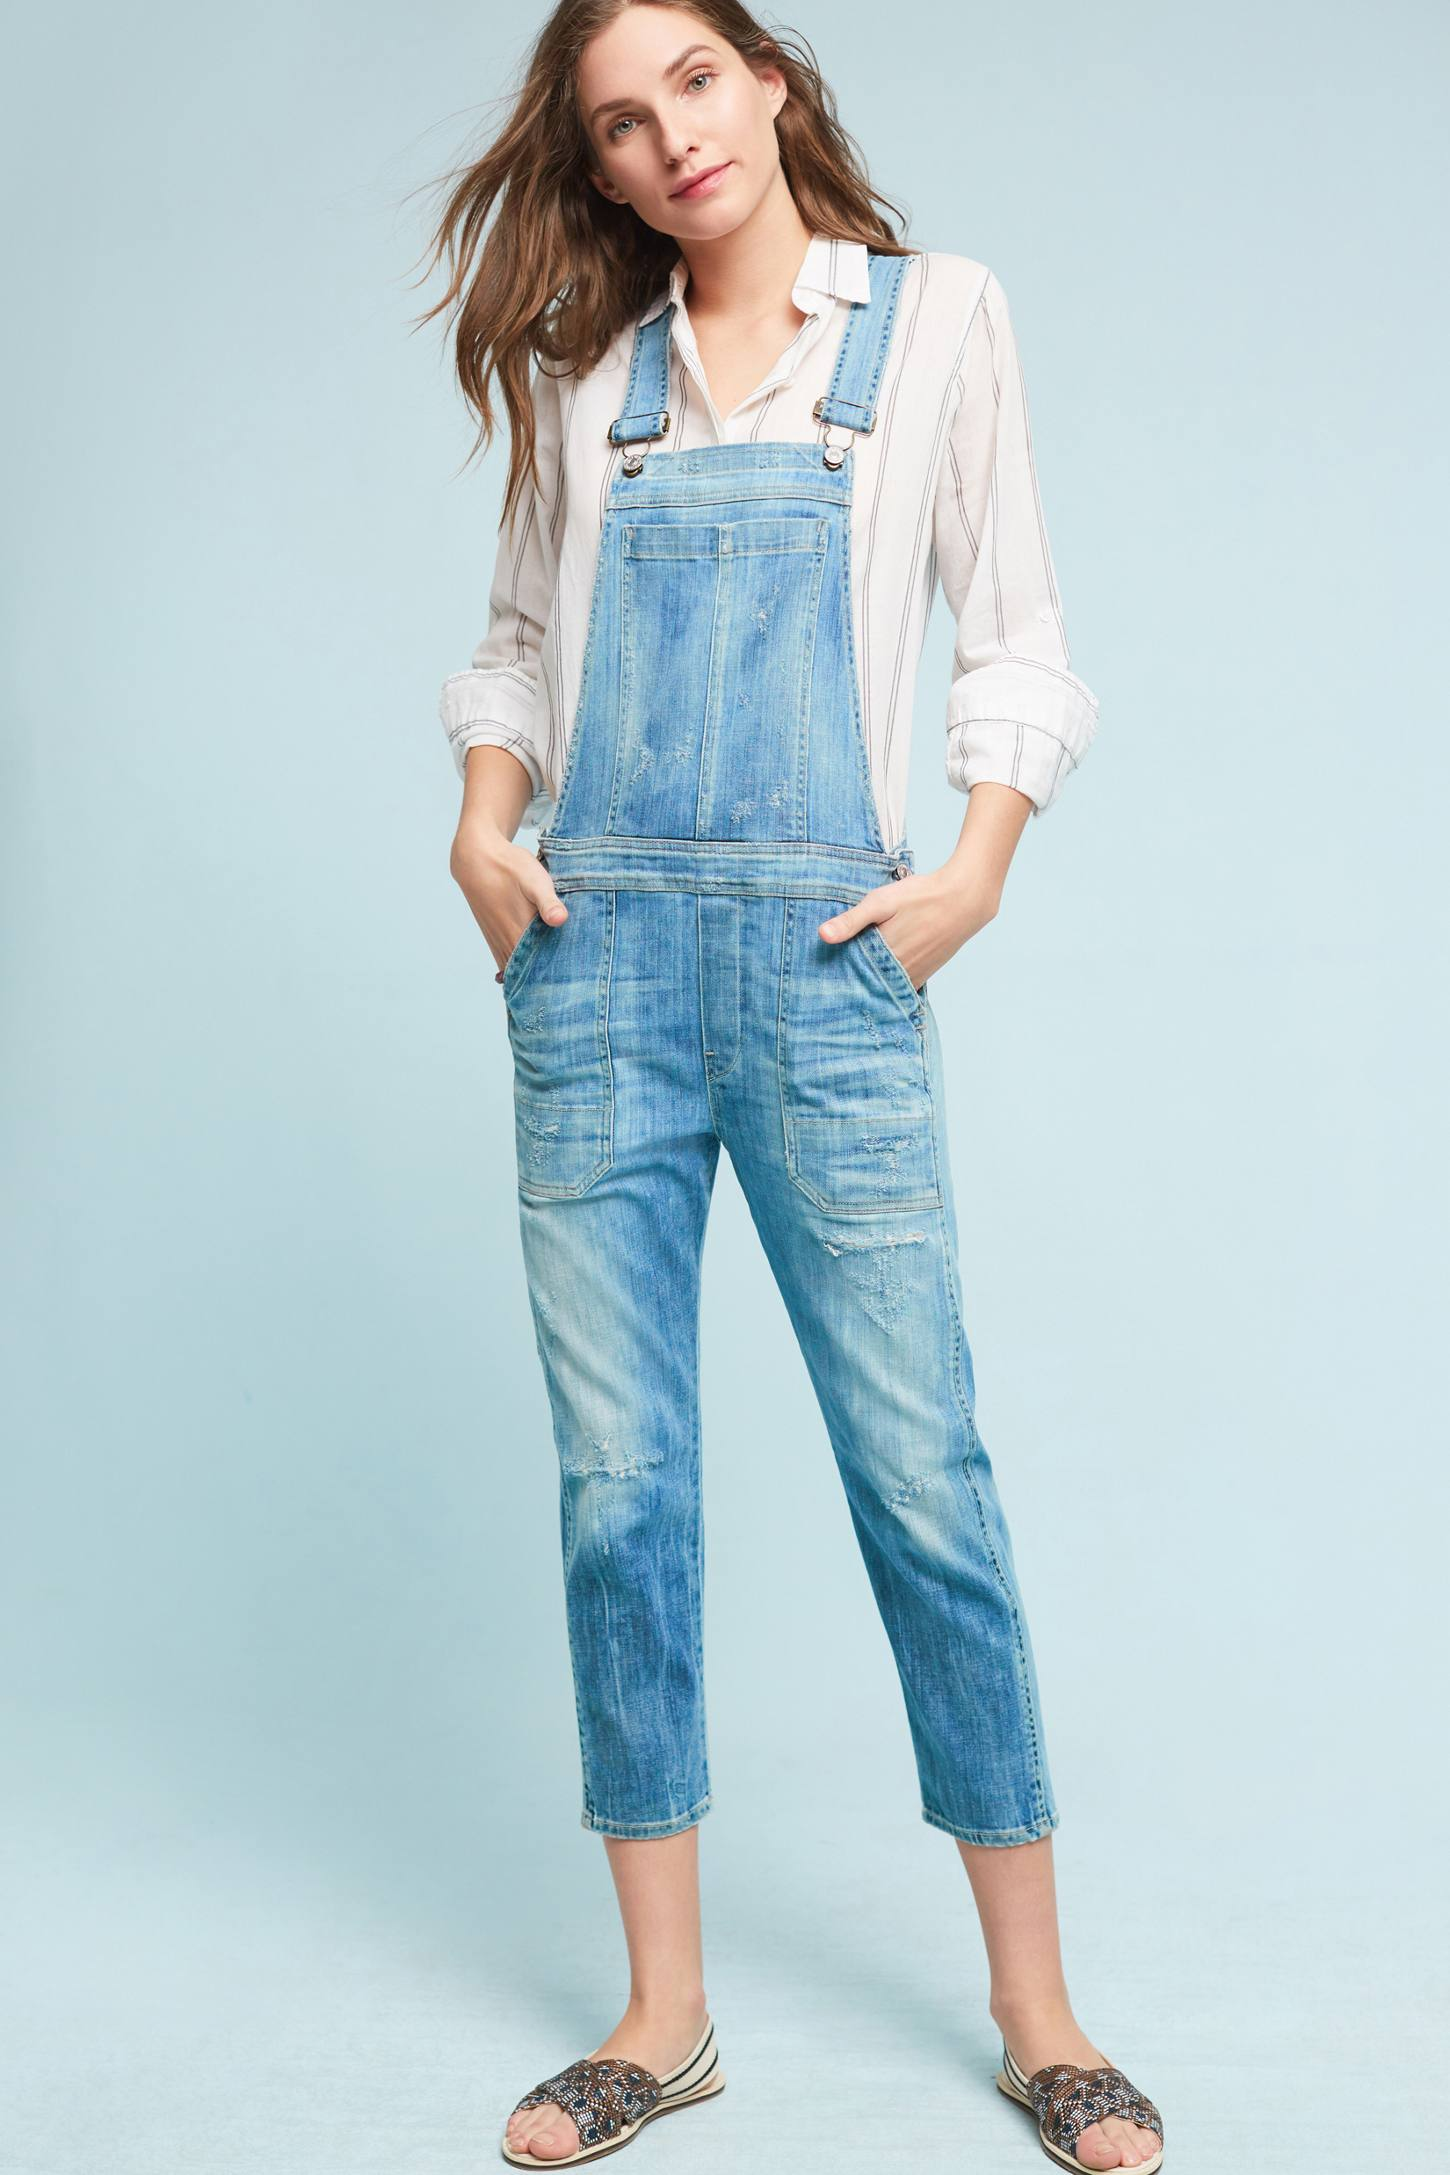 Slide View: 1: Citizens of Humanity Audrey Overalls